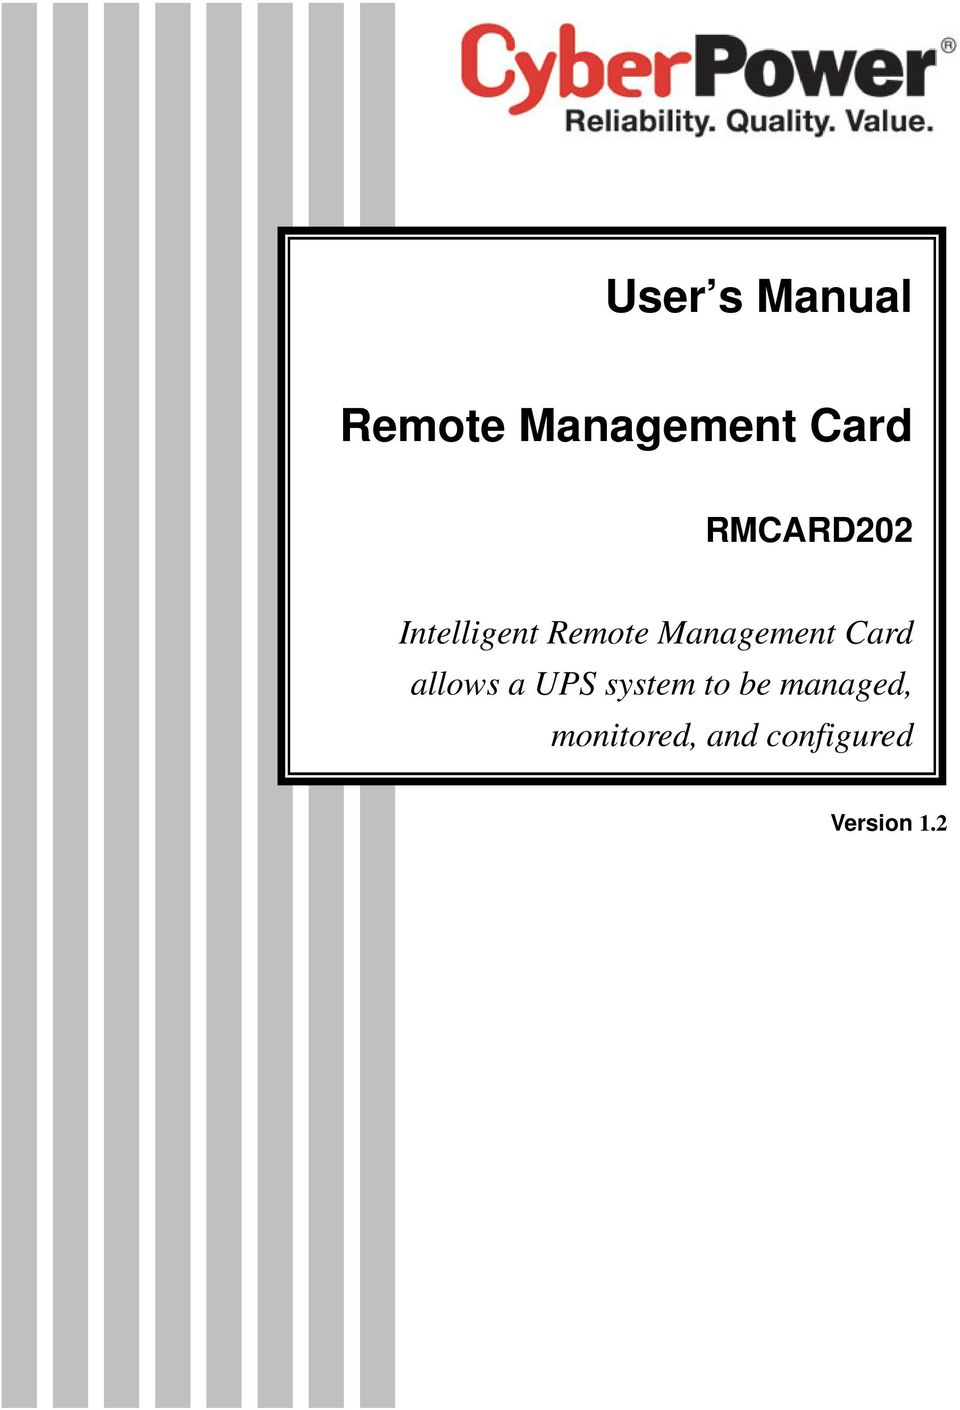 Management Card allows a UPS system to